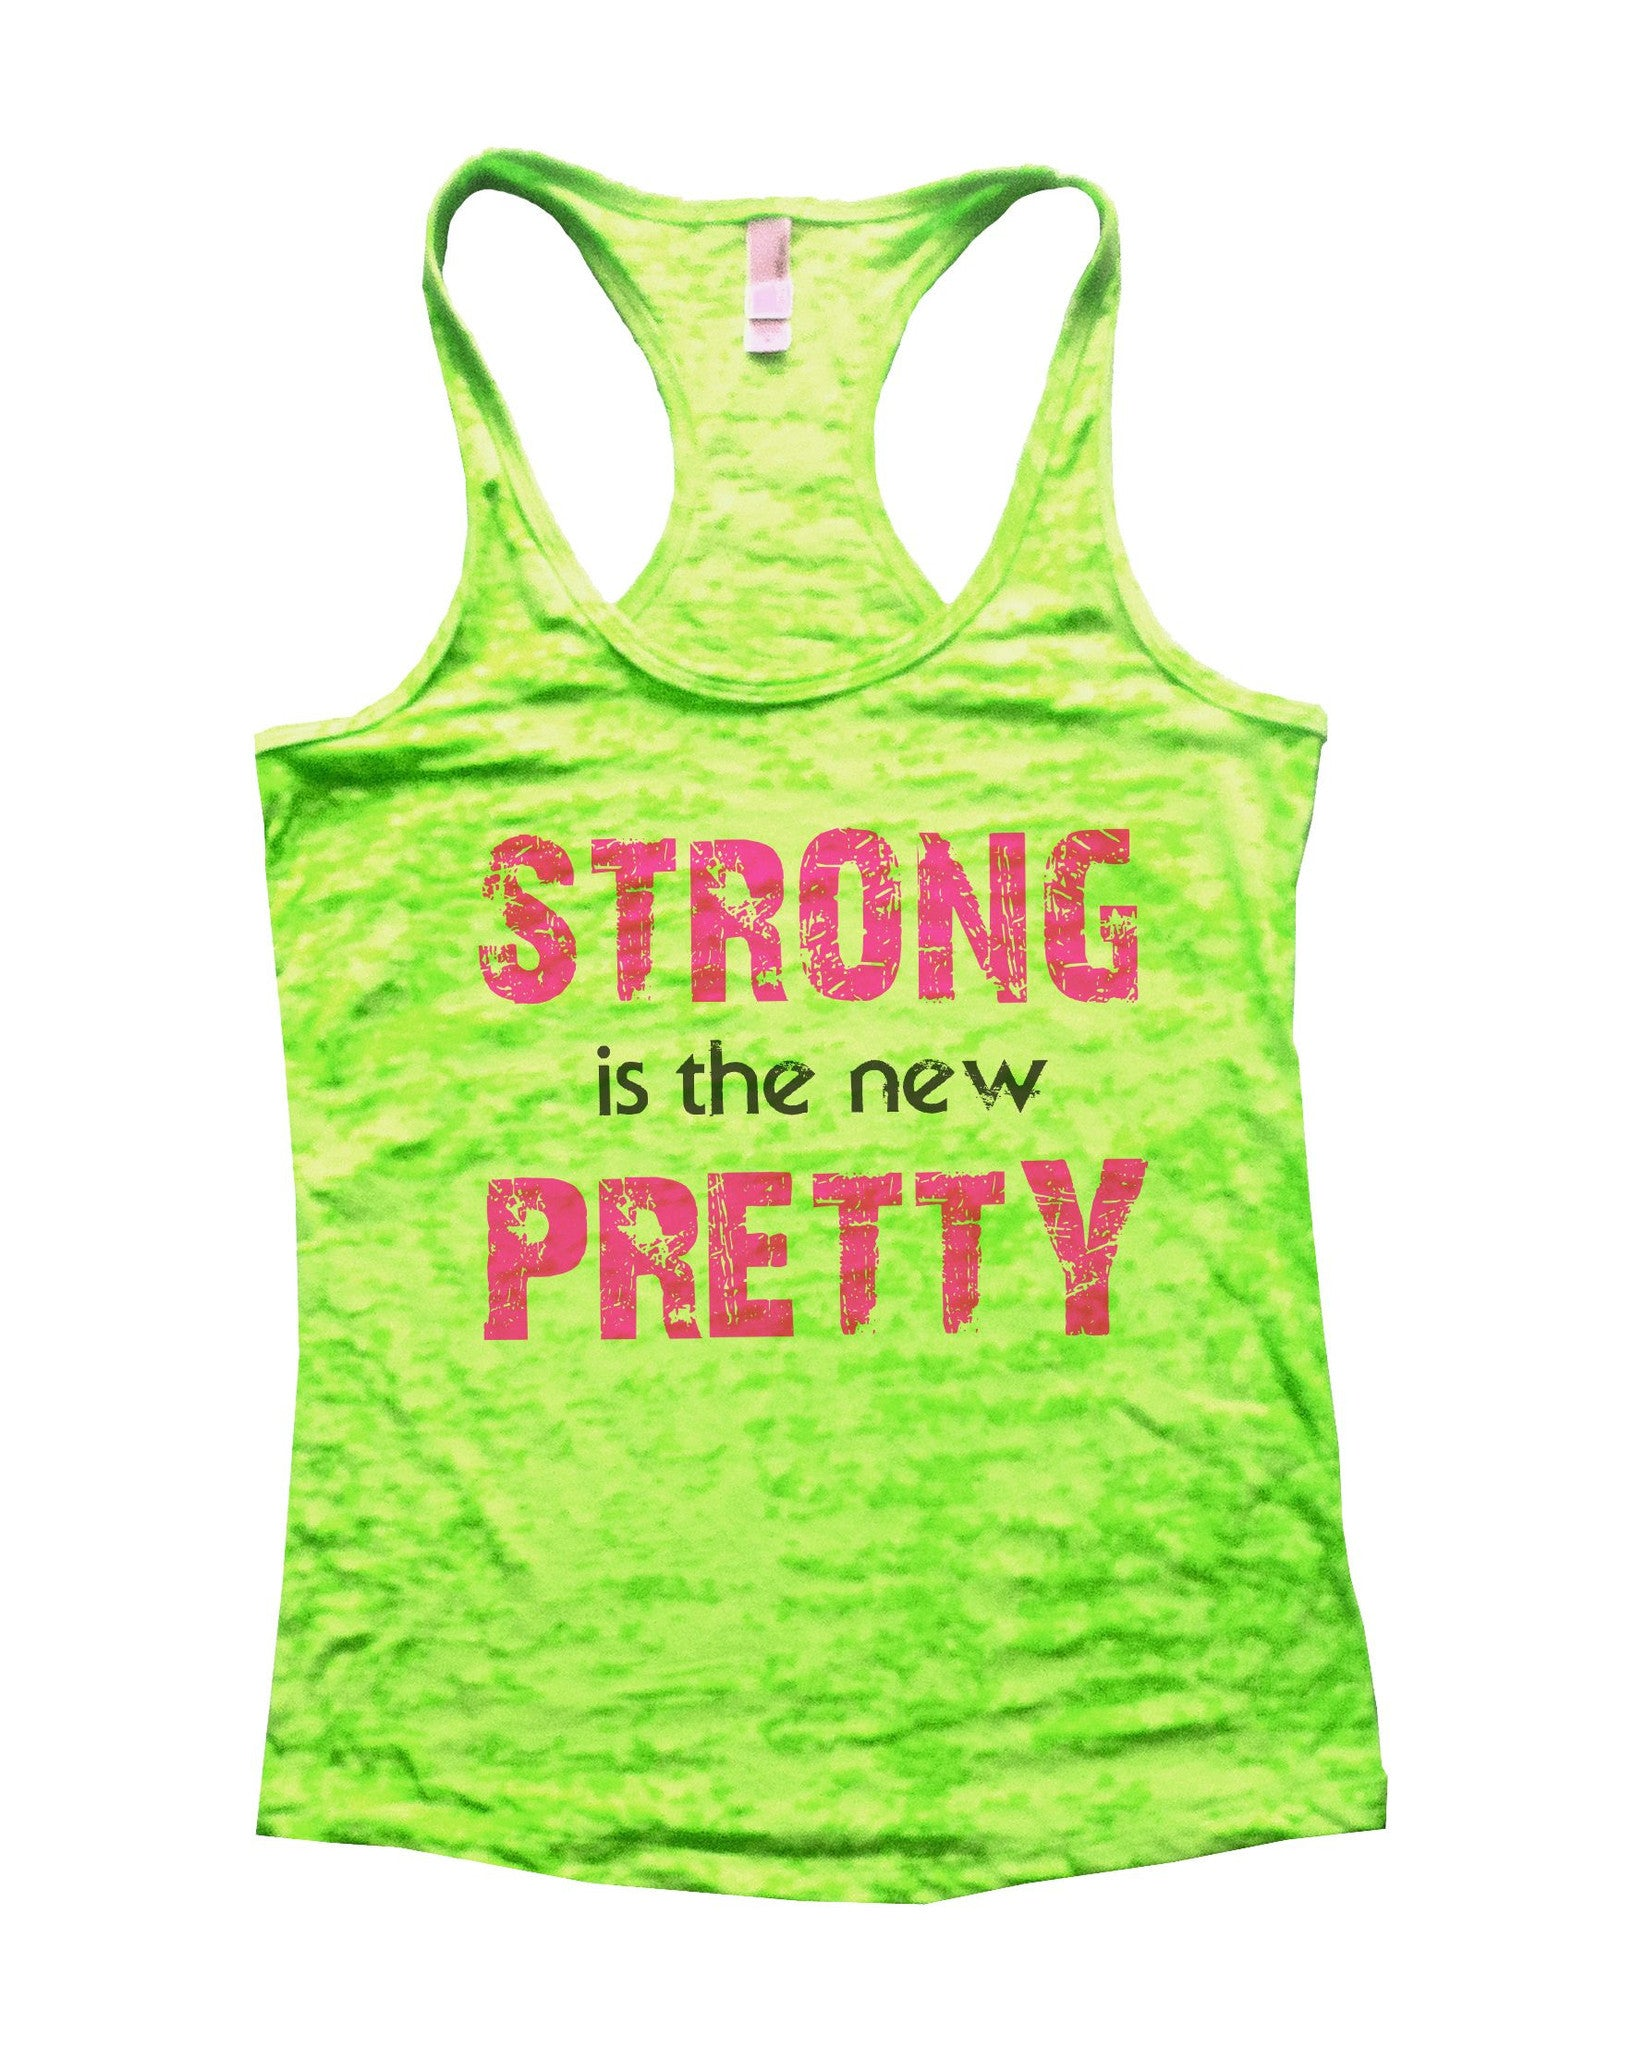 Strong Is The New Pretty Burnout Tank Top By BurnoutTankTops.com - 746 - Funny Shirts Tank Tops Burnouts and Triblends  - 1